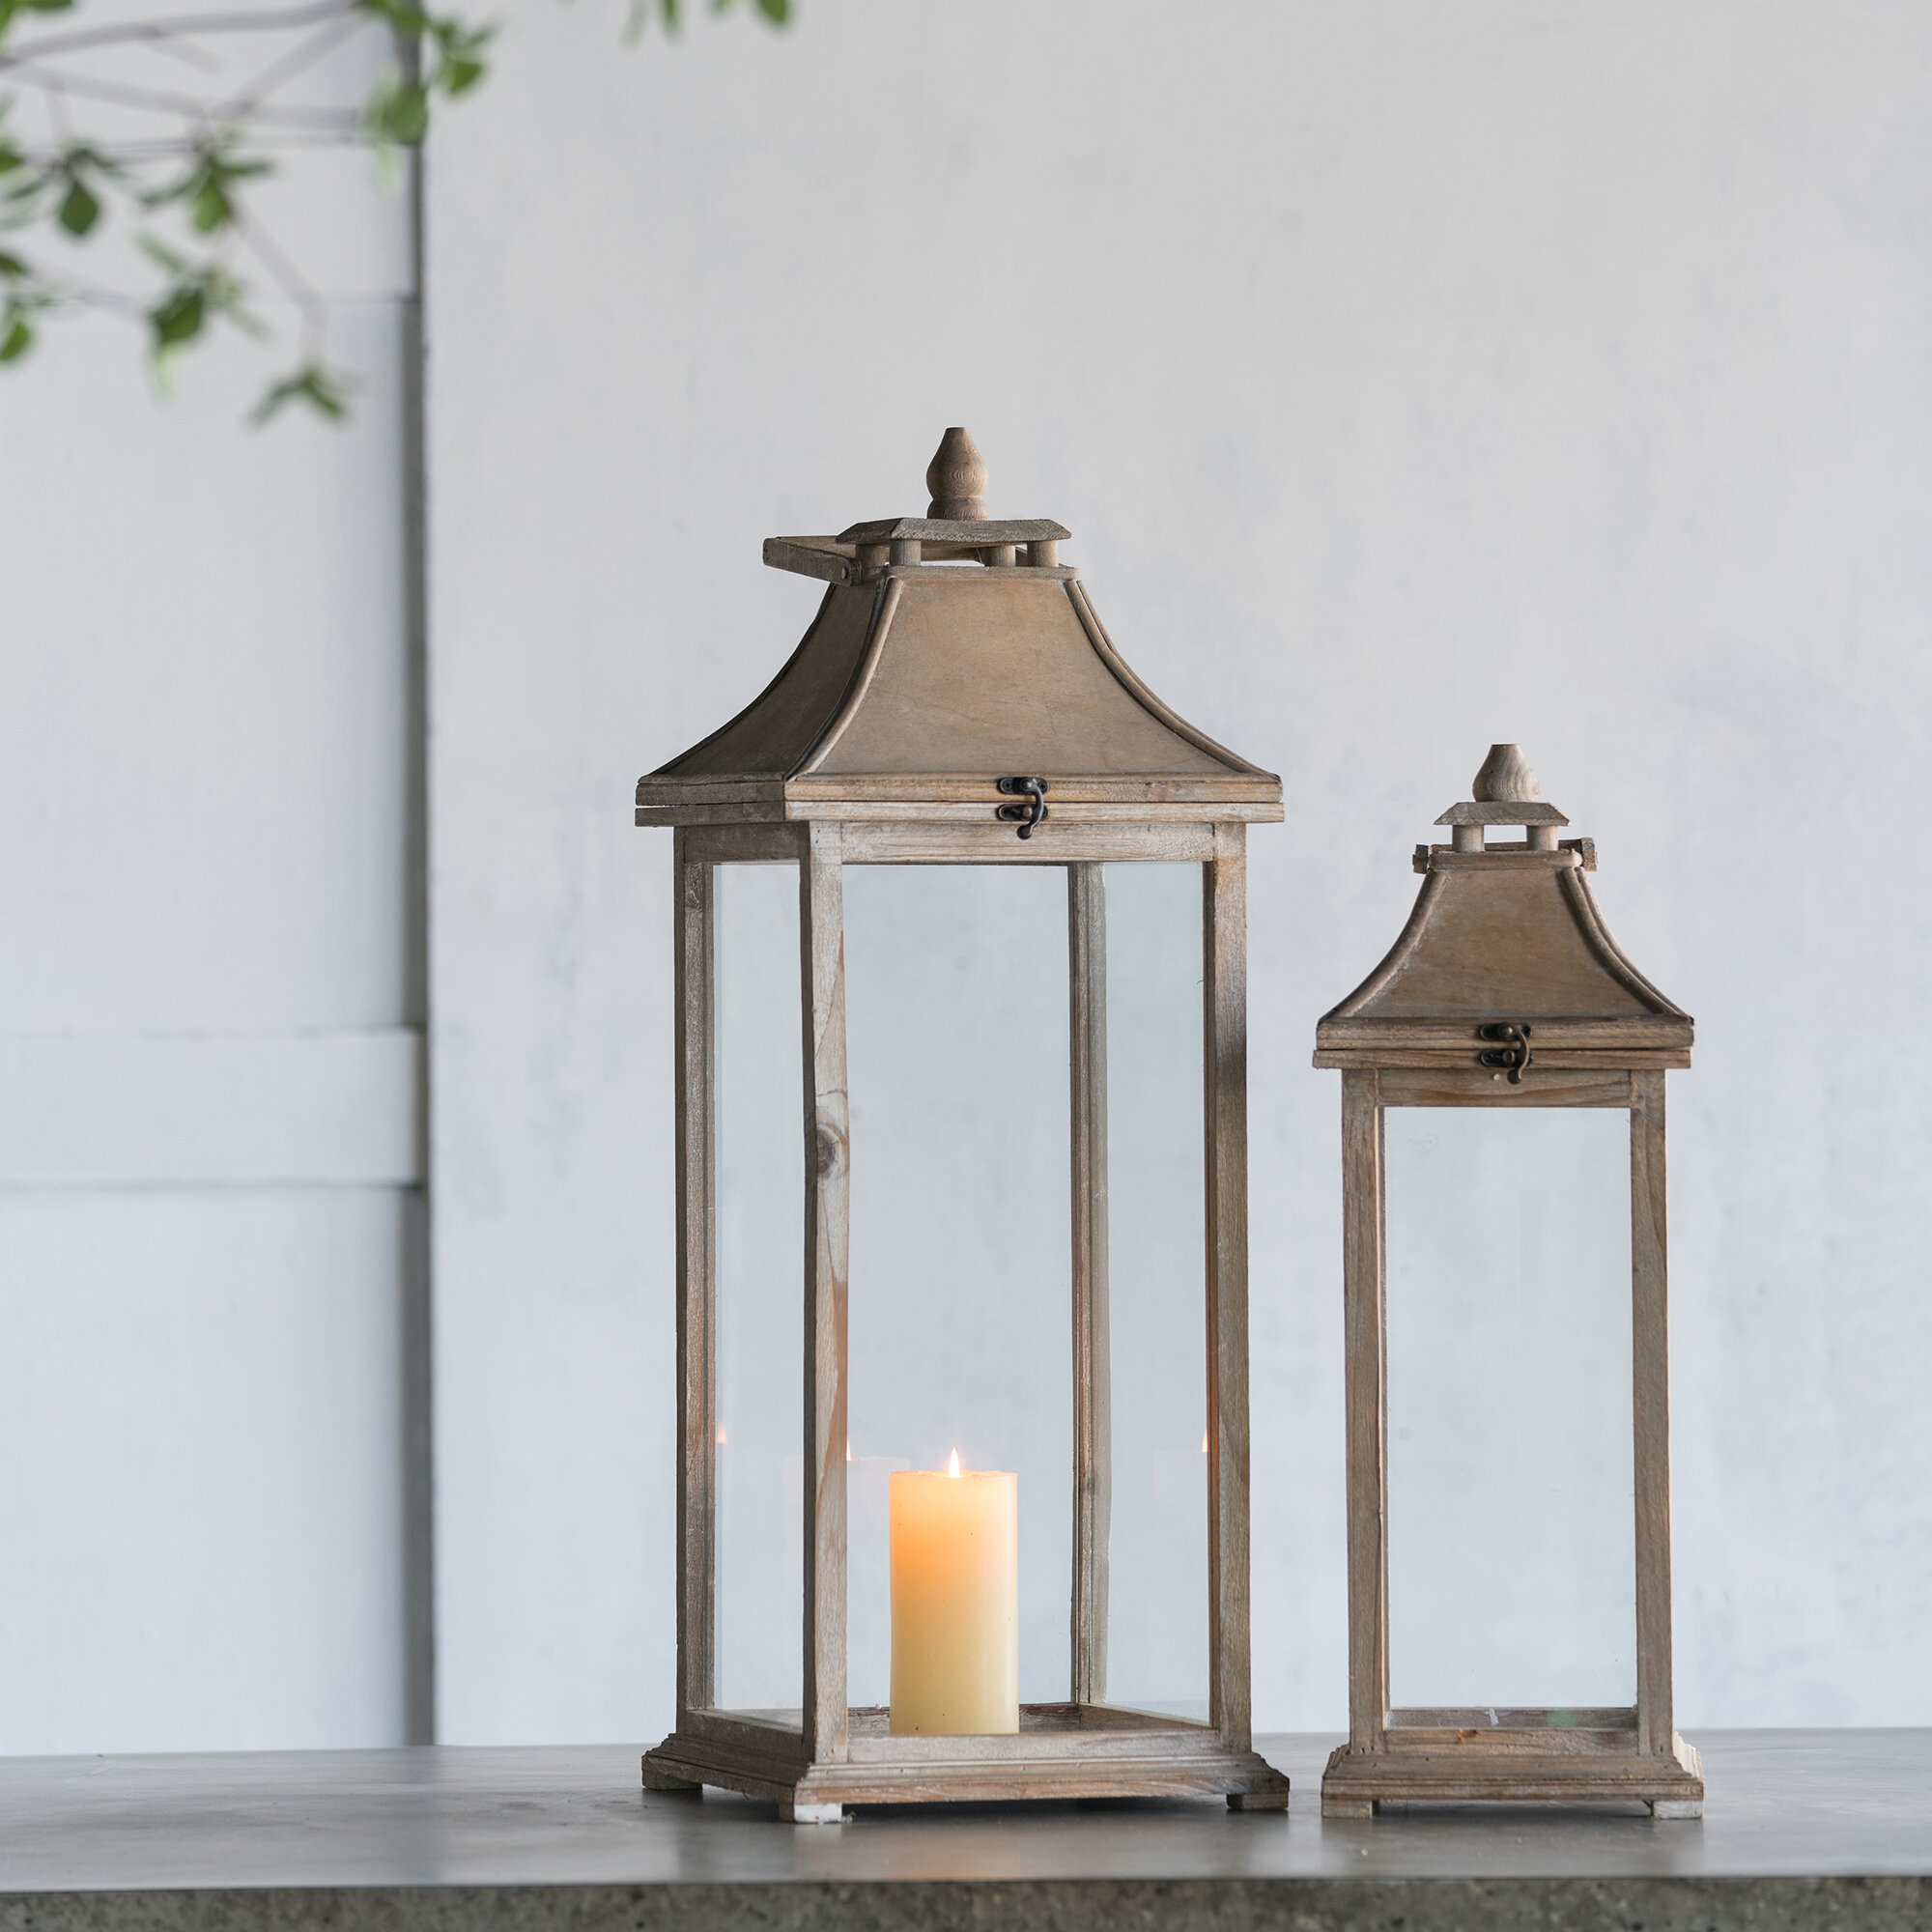 Surprising Floor Tall Large Candle Holders Youll Love In 2019 Wayfair Interior Design Ideas Gentotryabchikinfo